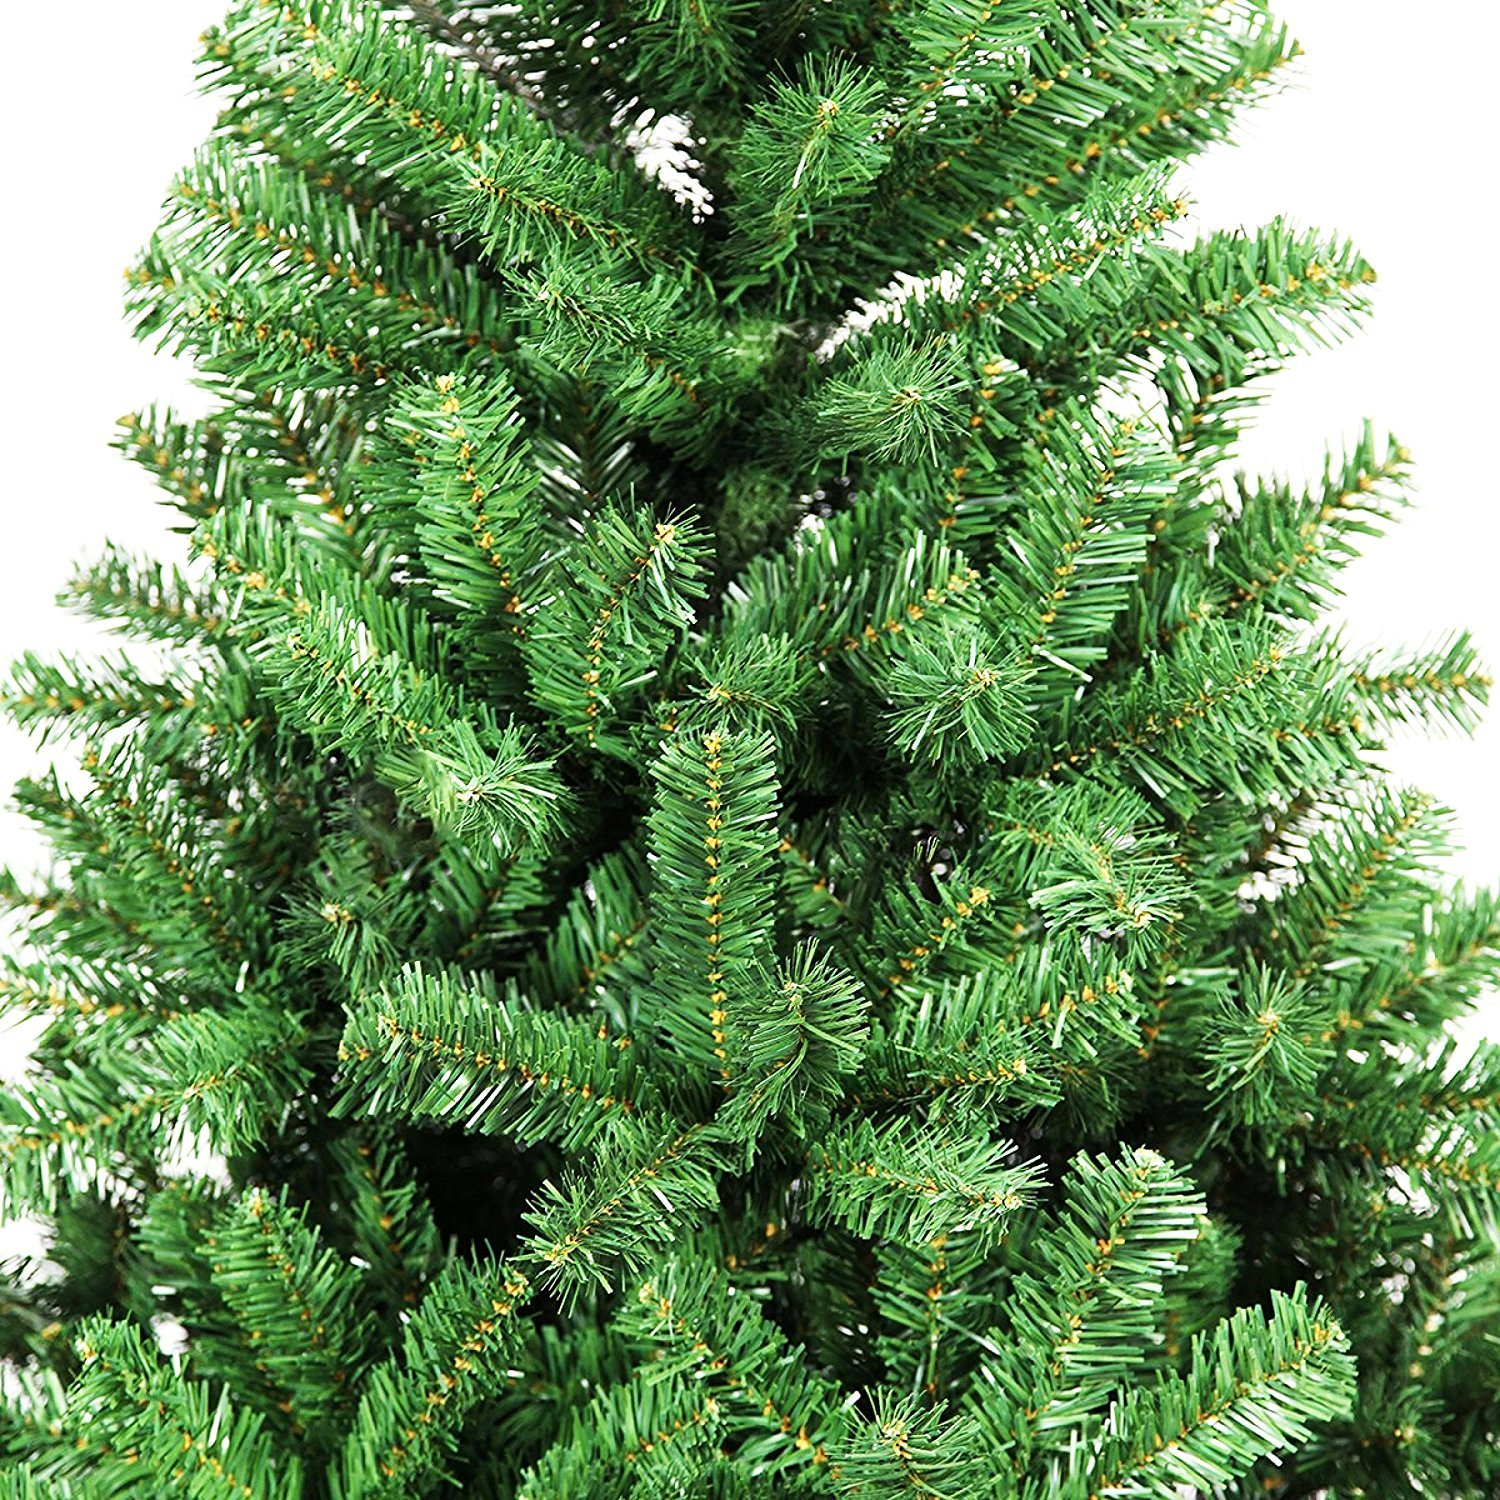 Buy Ote Christmas Tree For Decoration (7 Ft) 7 Feet